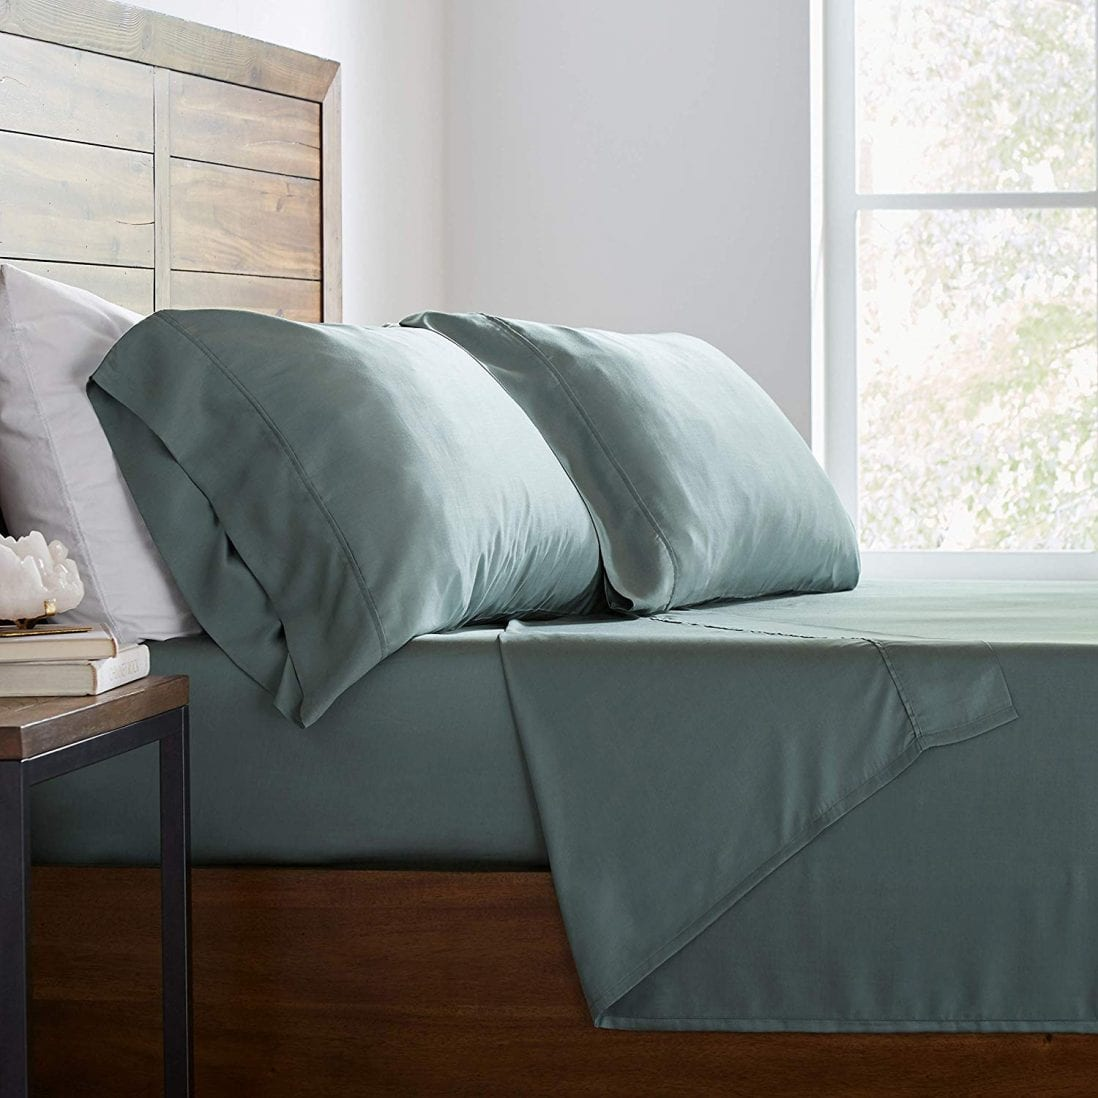 Stone & Beam Best Tencel Sheets Review and Buying Guide by www.dailysleep.org